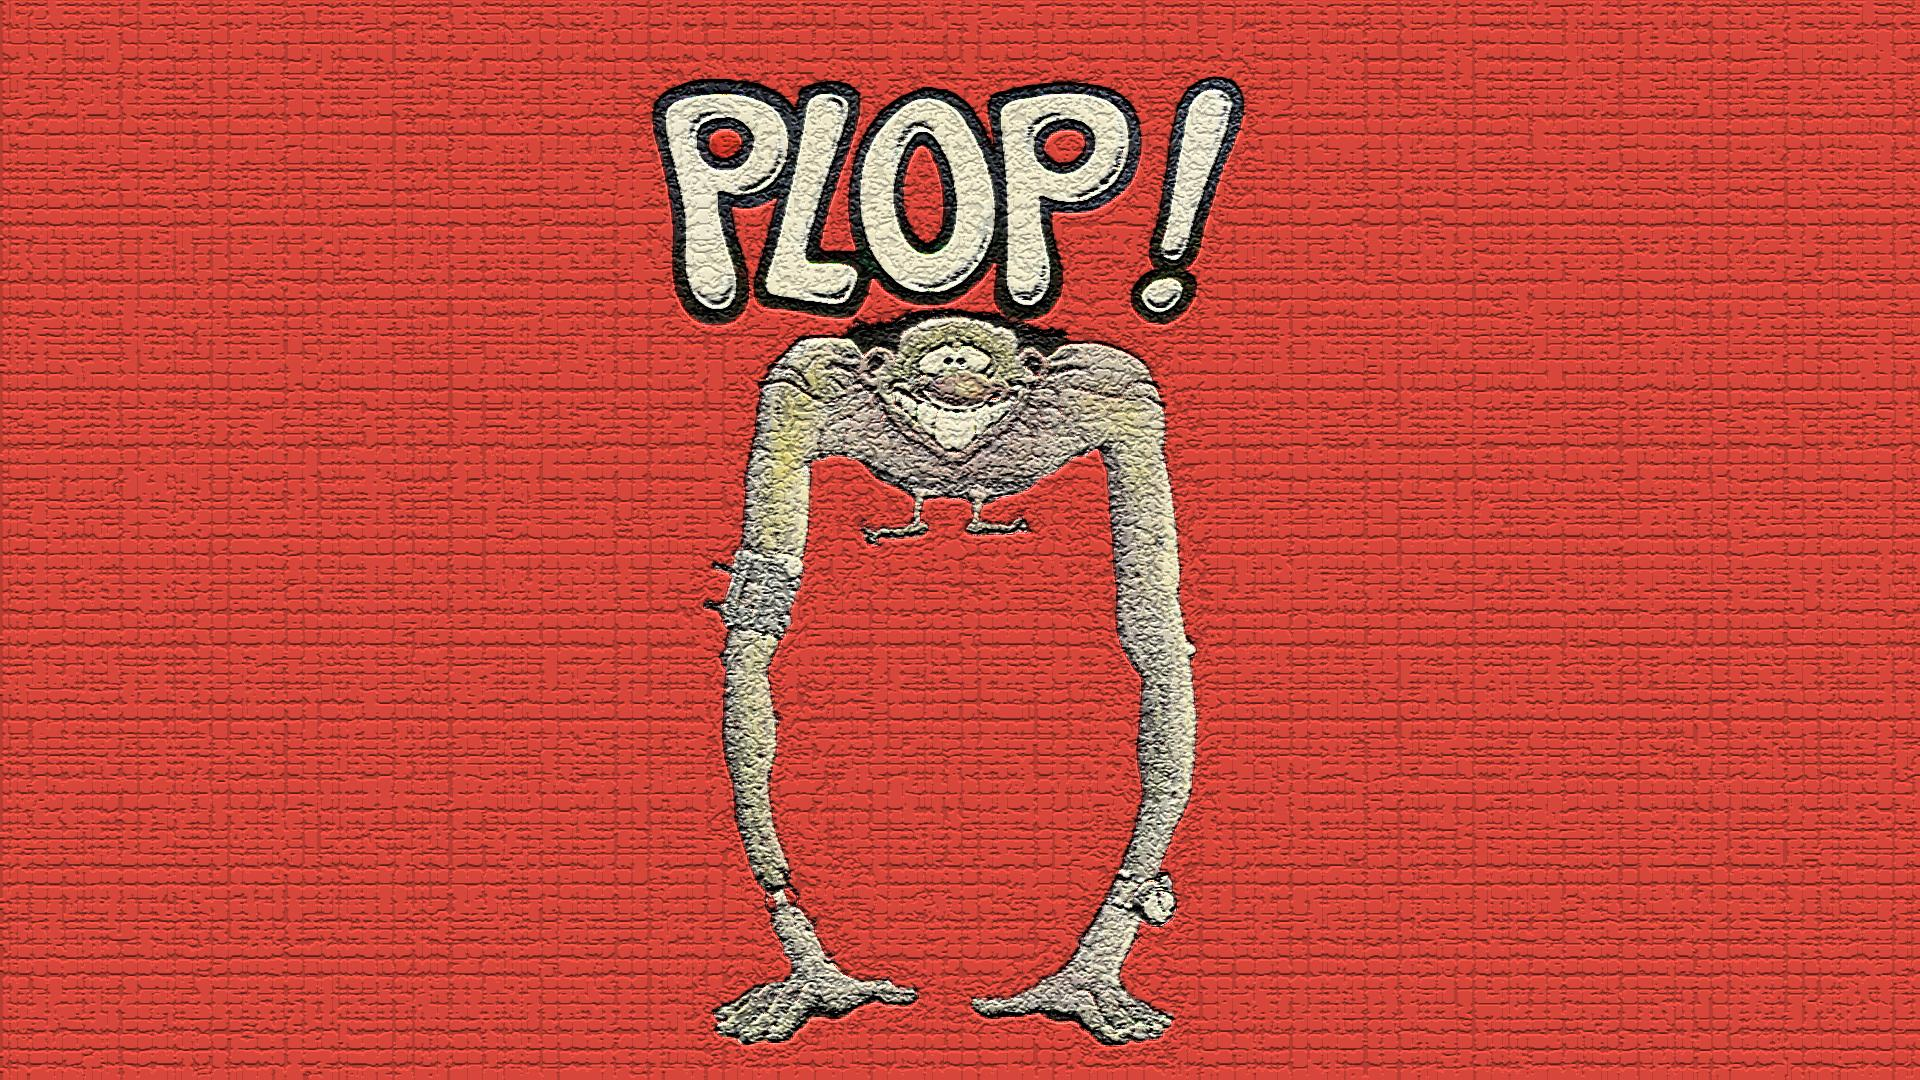 Plop! Comics wallpapers HD quality